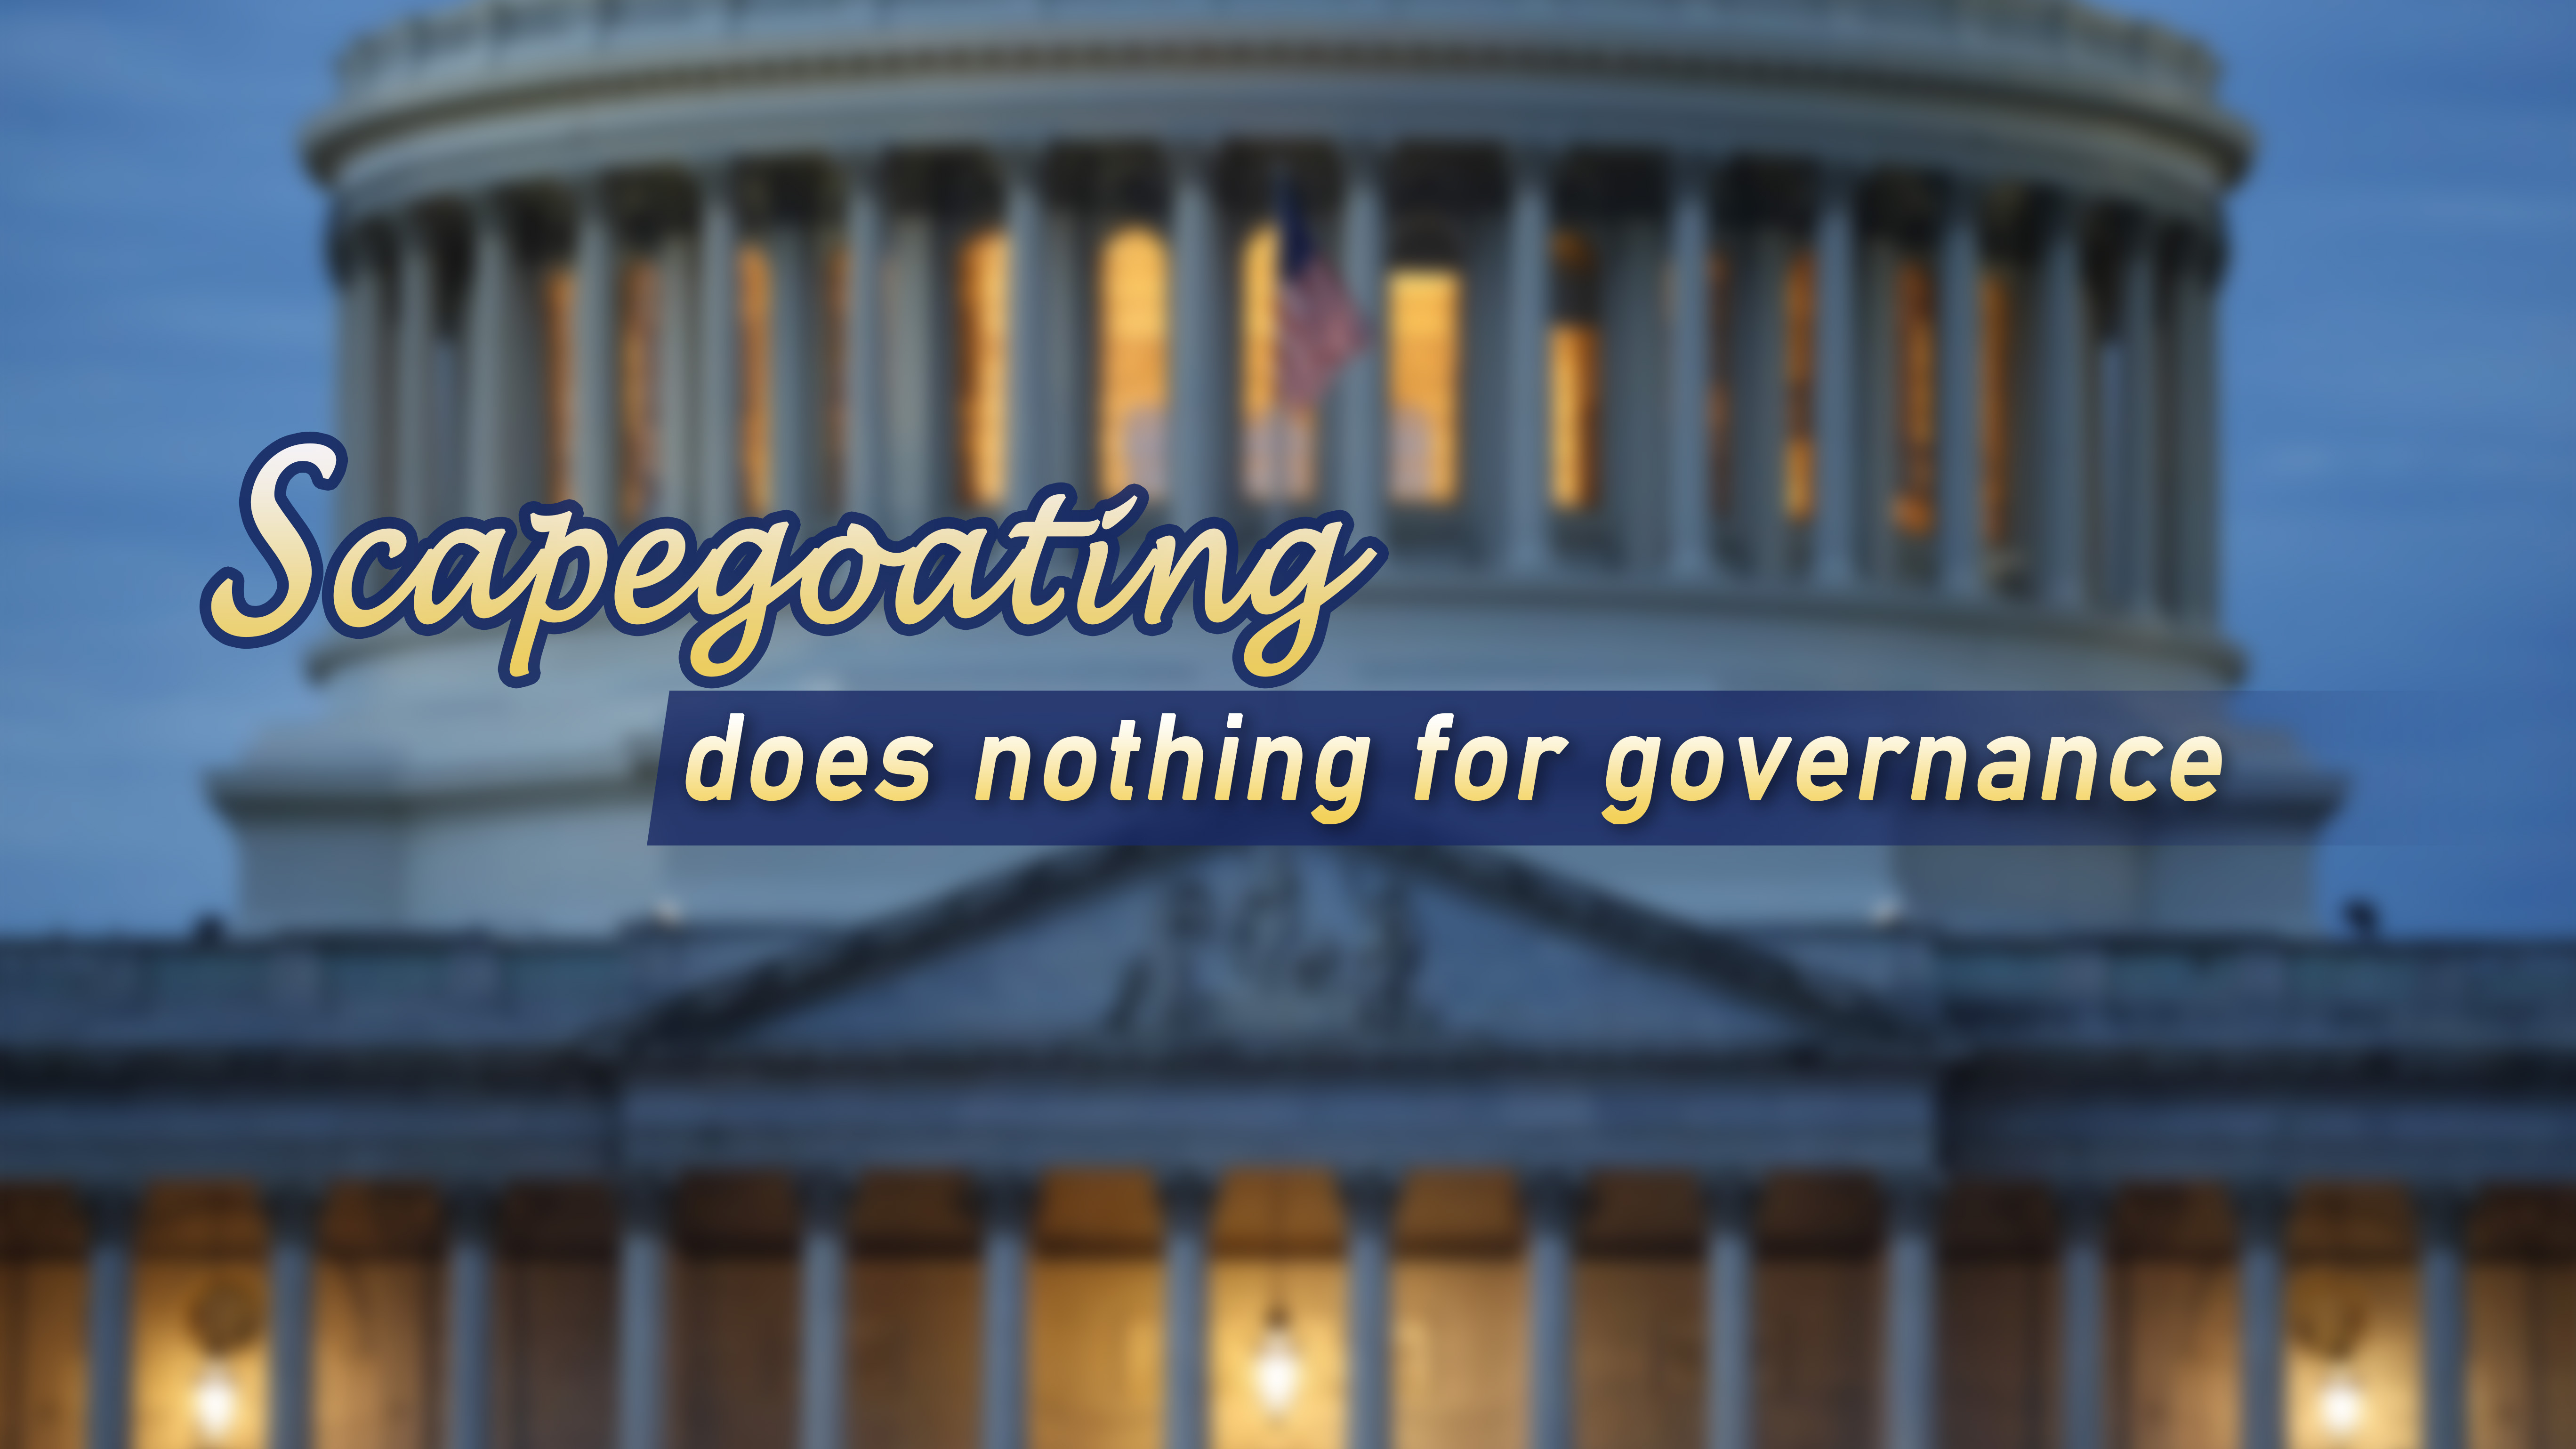 Scapegoating does nothing for governance